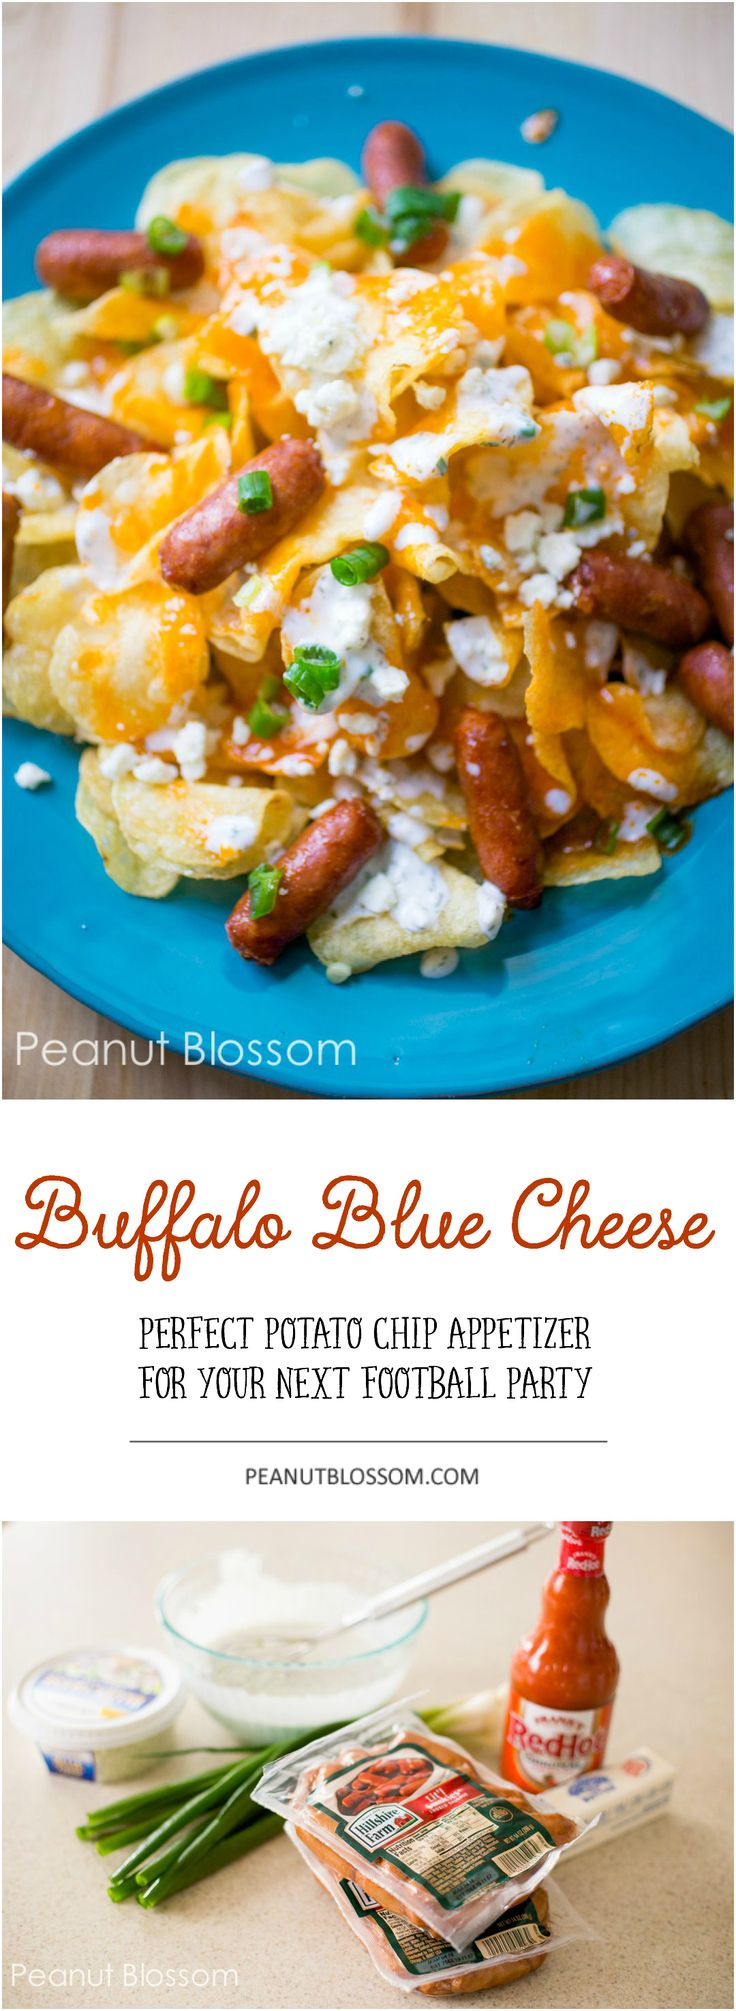 Skip the nachos at your next football party and try this awesome Little Smokies recipe instead! Buffalo blue cheese potato chips with Little Smokies. This plate disappeared in a hurry during the last game. The guys couldn't get enough of it. Perfect Super Bowl snack!